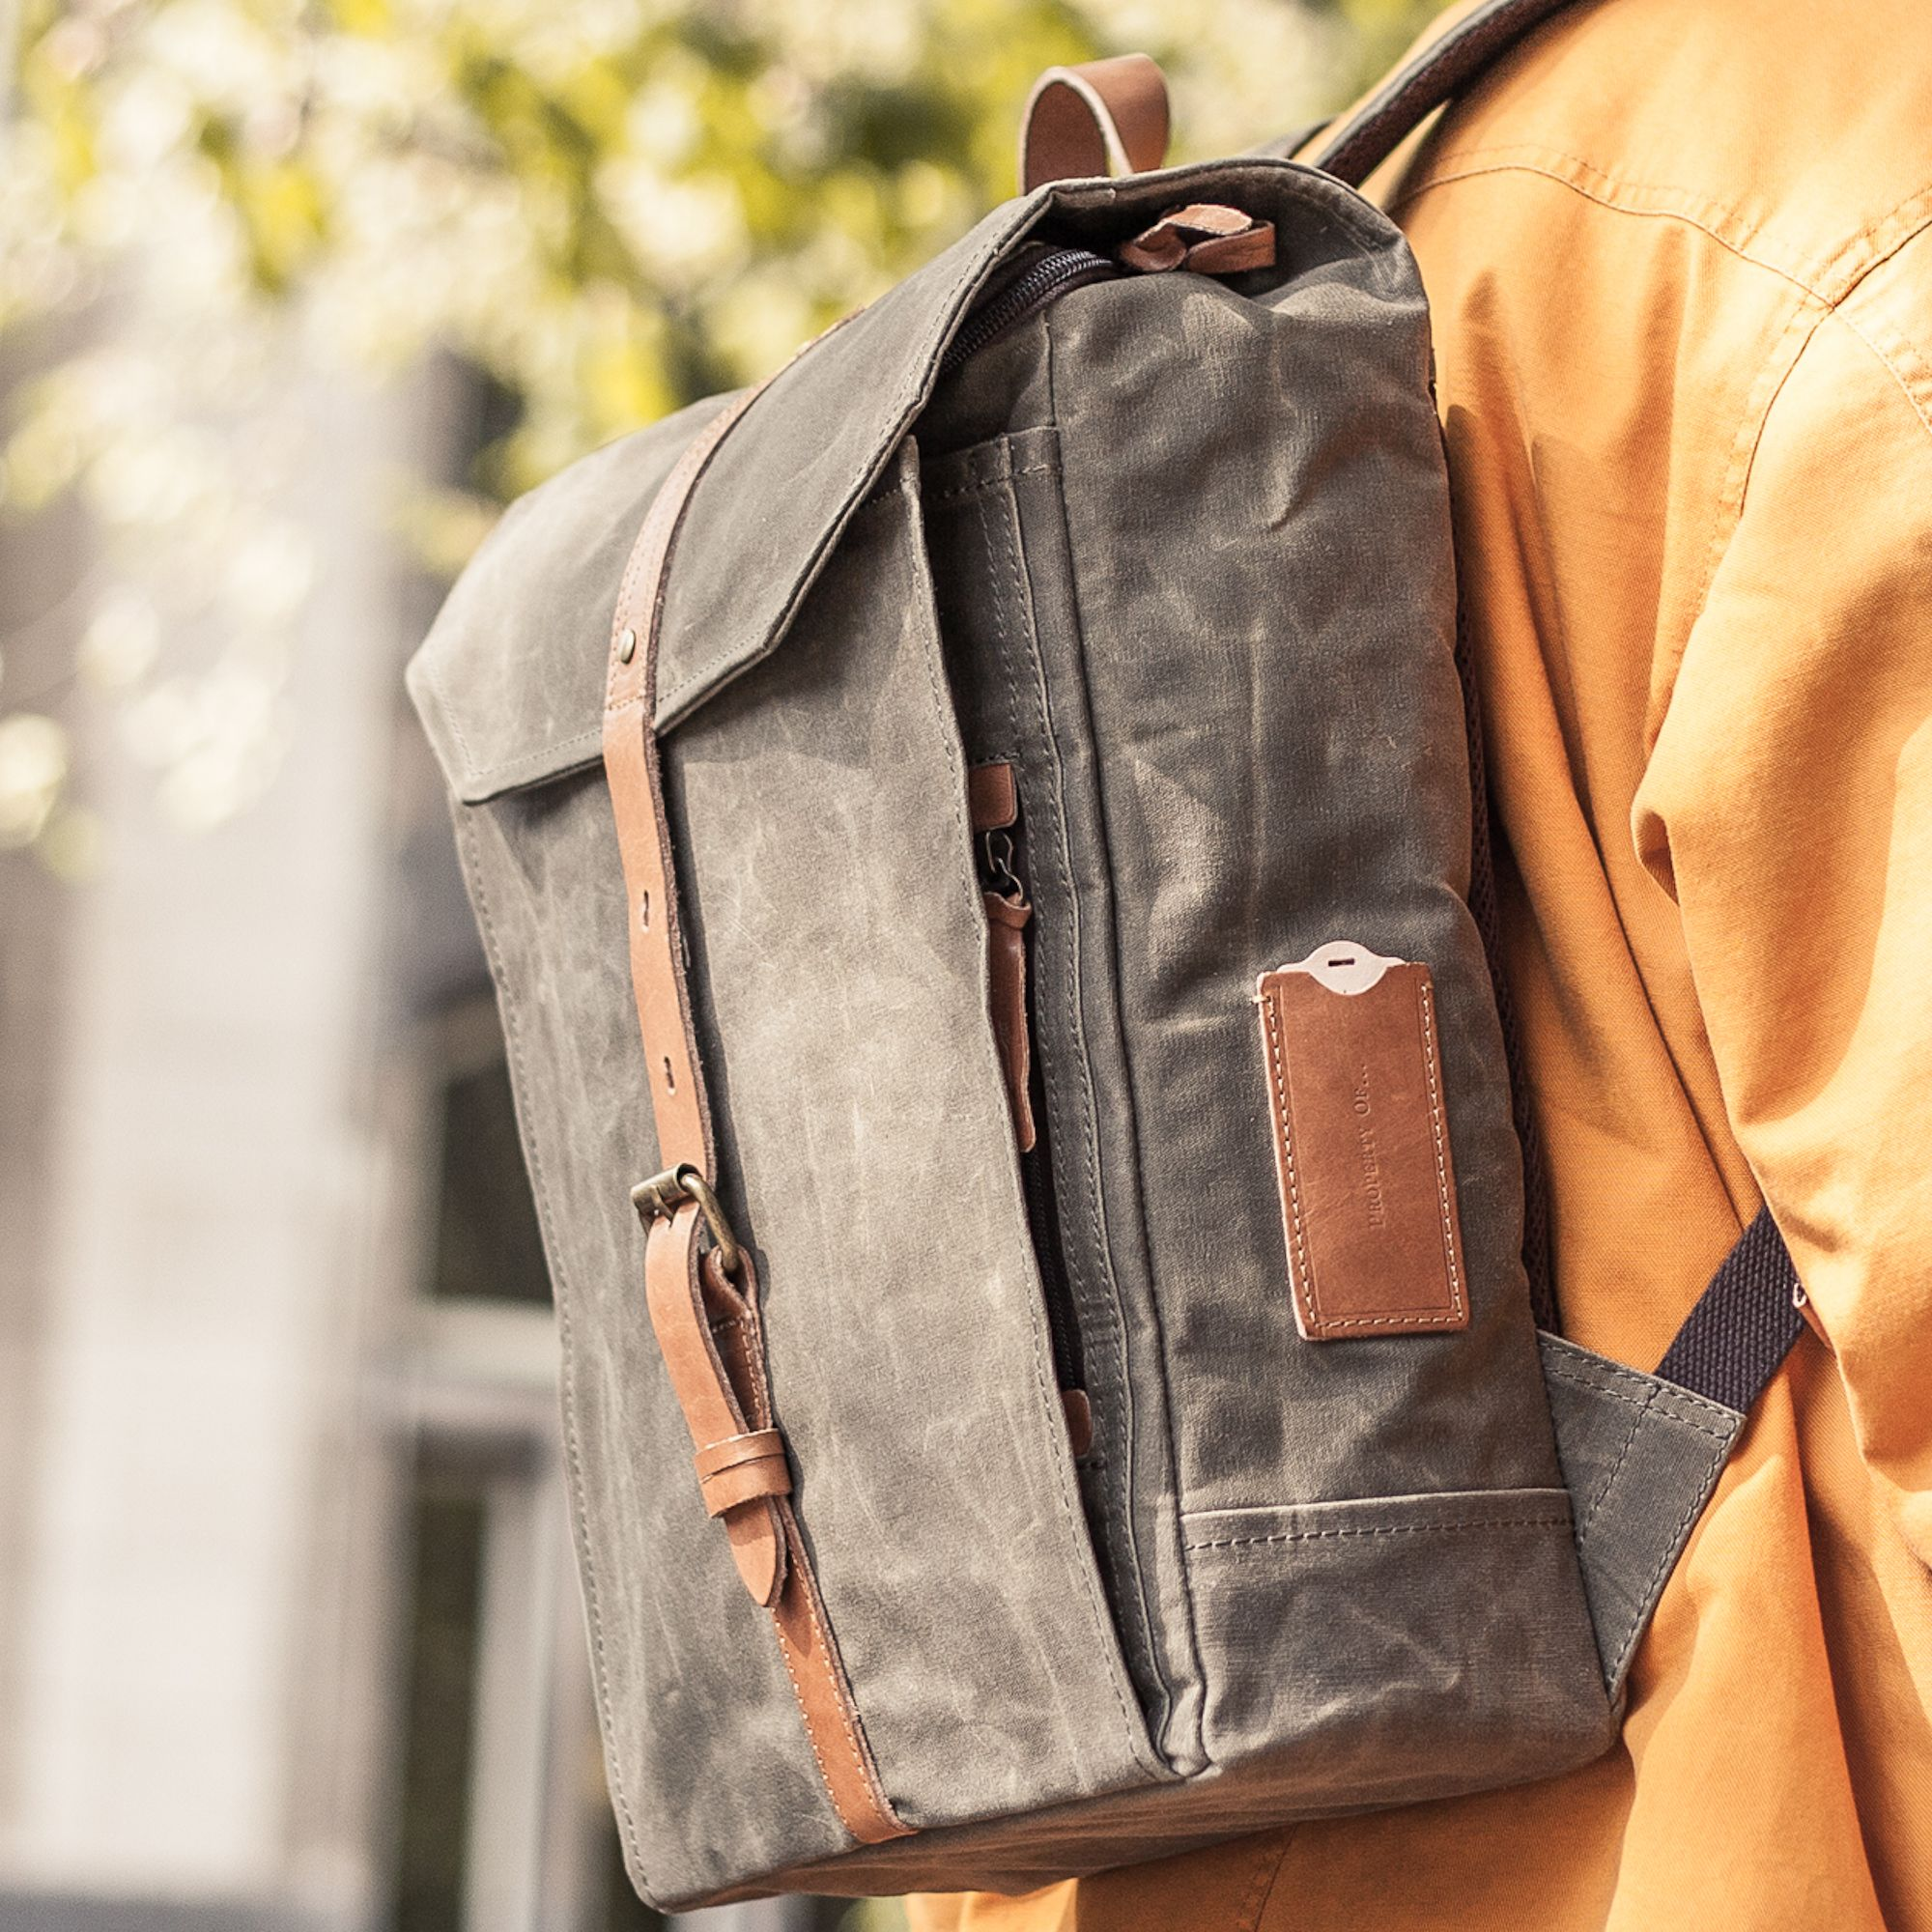 "HECTOR BACKPACK / 299€ / WAXED CANVAS / MEN'S BAG / Go in style with this well designed backpack. On the inside you will find a padded compartment for a 15"" laptop. With multiple storage and organizational pockets all your stuff will be sorted. The Hector Backpack is available in a waxed coated canvas."